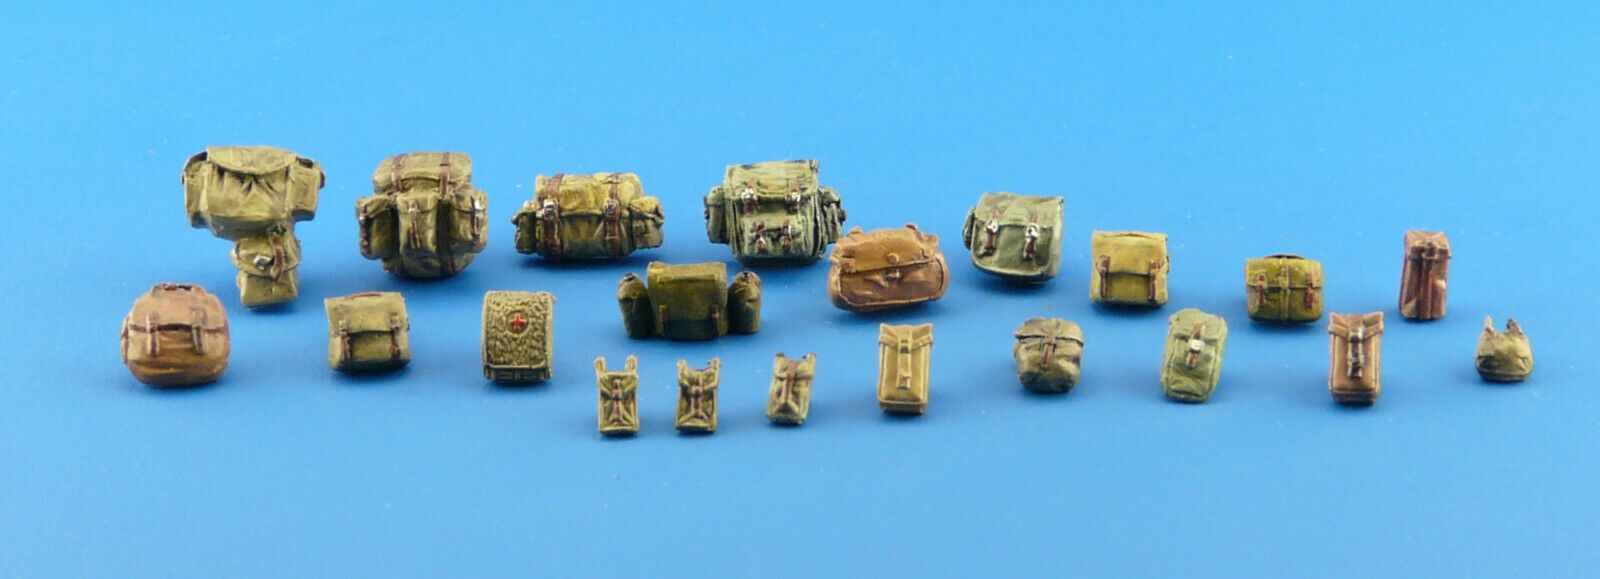 1/35 Military Bags Scale Modelling Resin Stowage Kit Diorama Accessories Kit 11 - redoguk